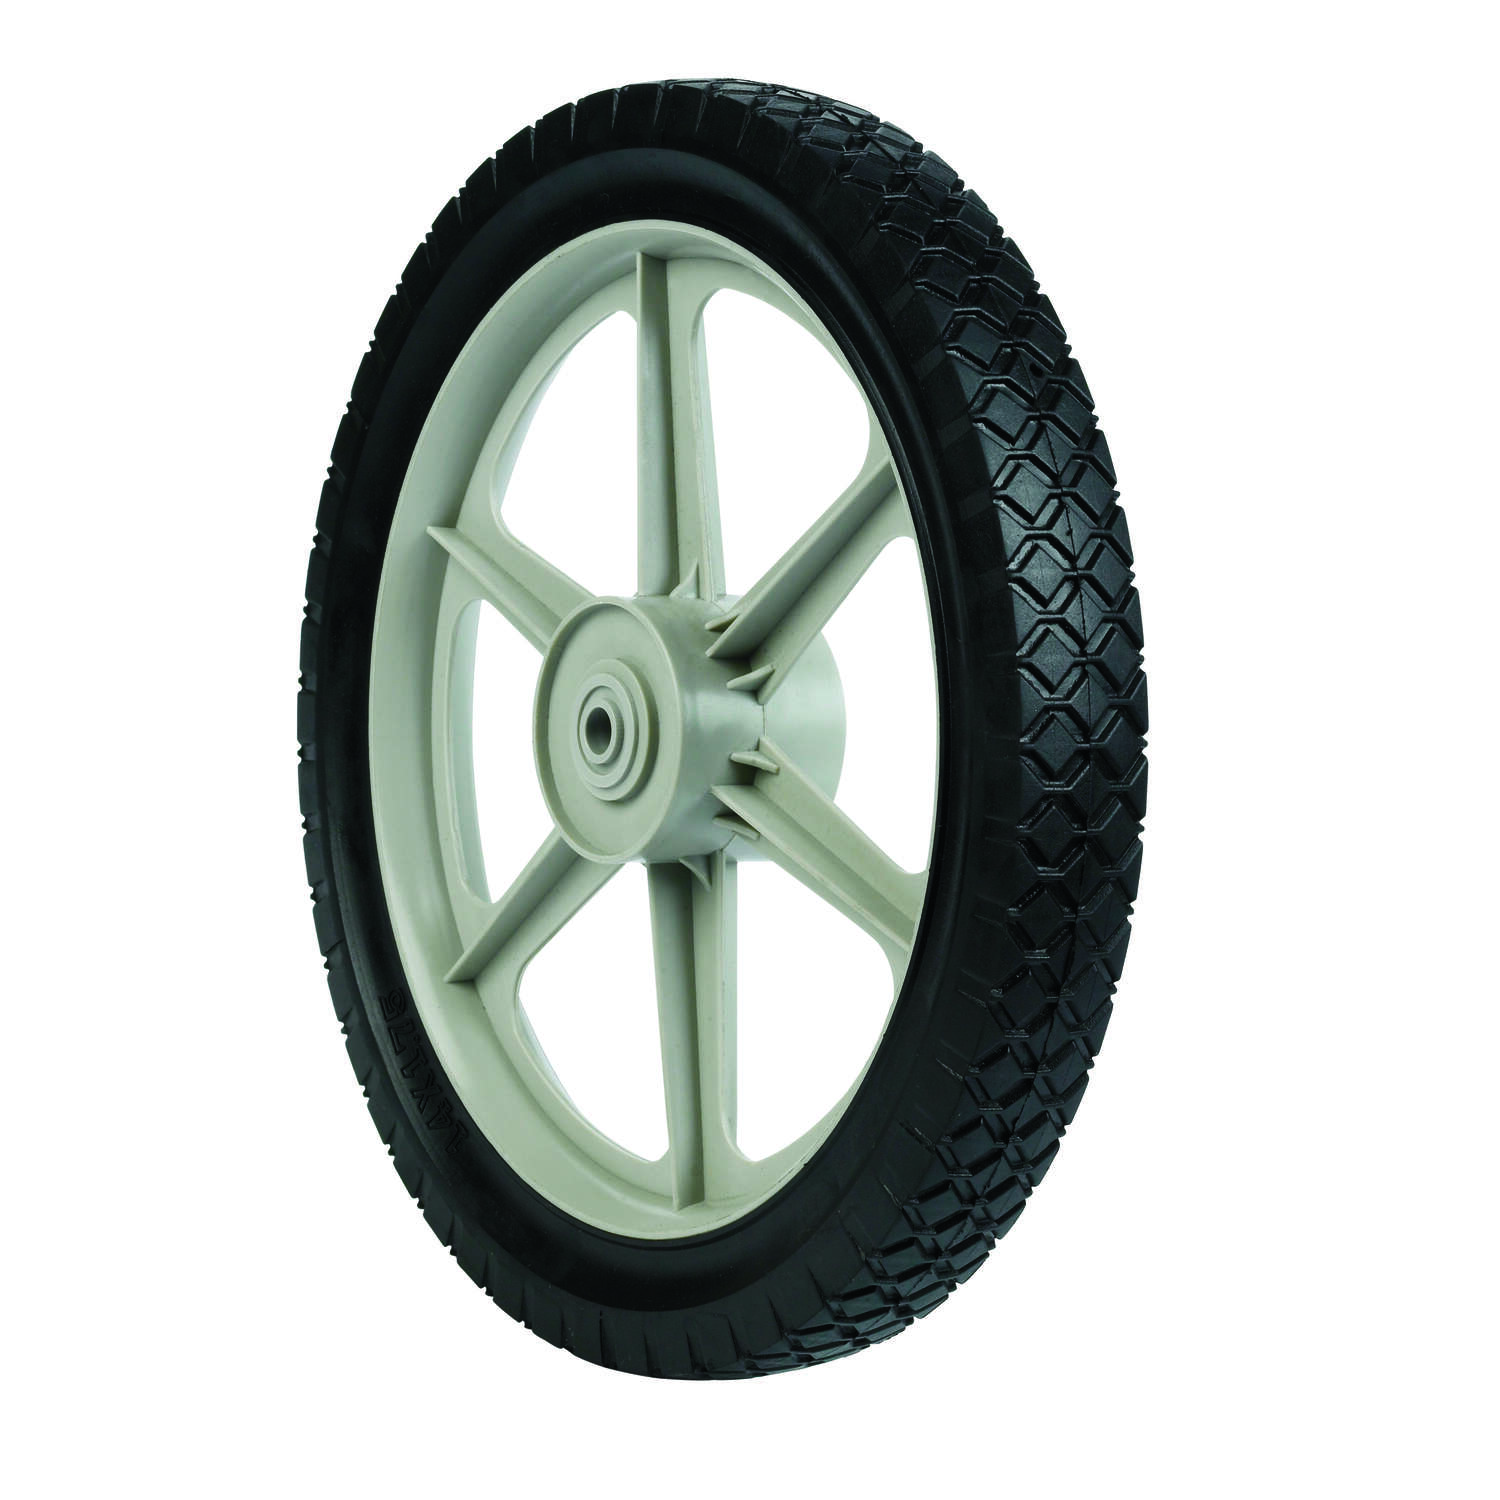 Arnold  1.75 in. W x 14 in. Dia. Plastic  Lawn Mower Replacement Wheel  60 lb.